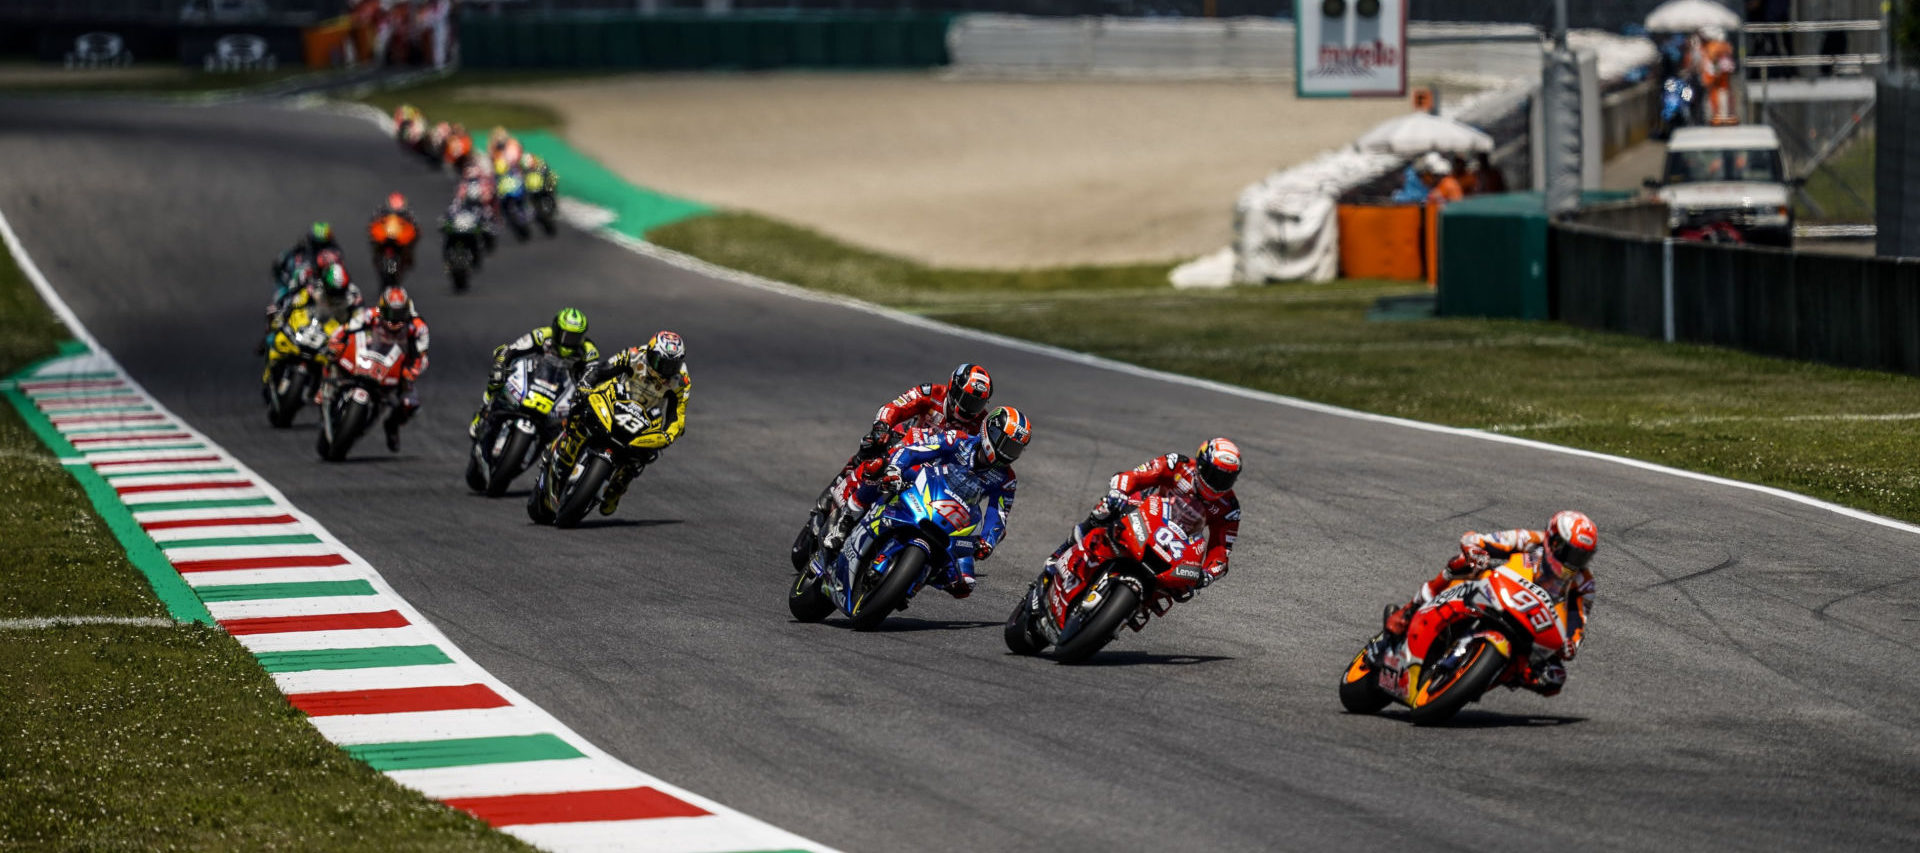 Marc Marquez 93) leading the MotoGP race at Mugello in 2019. Photo courtesy of Dorna.